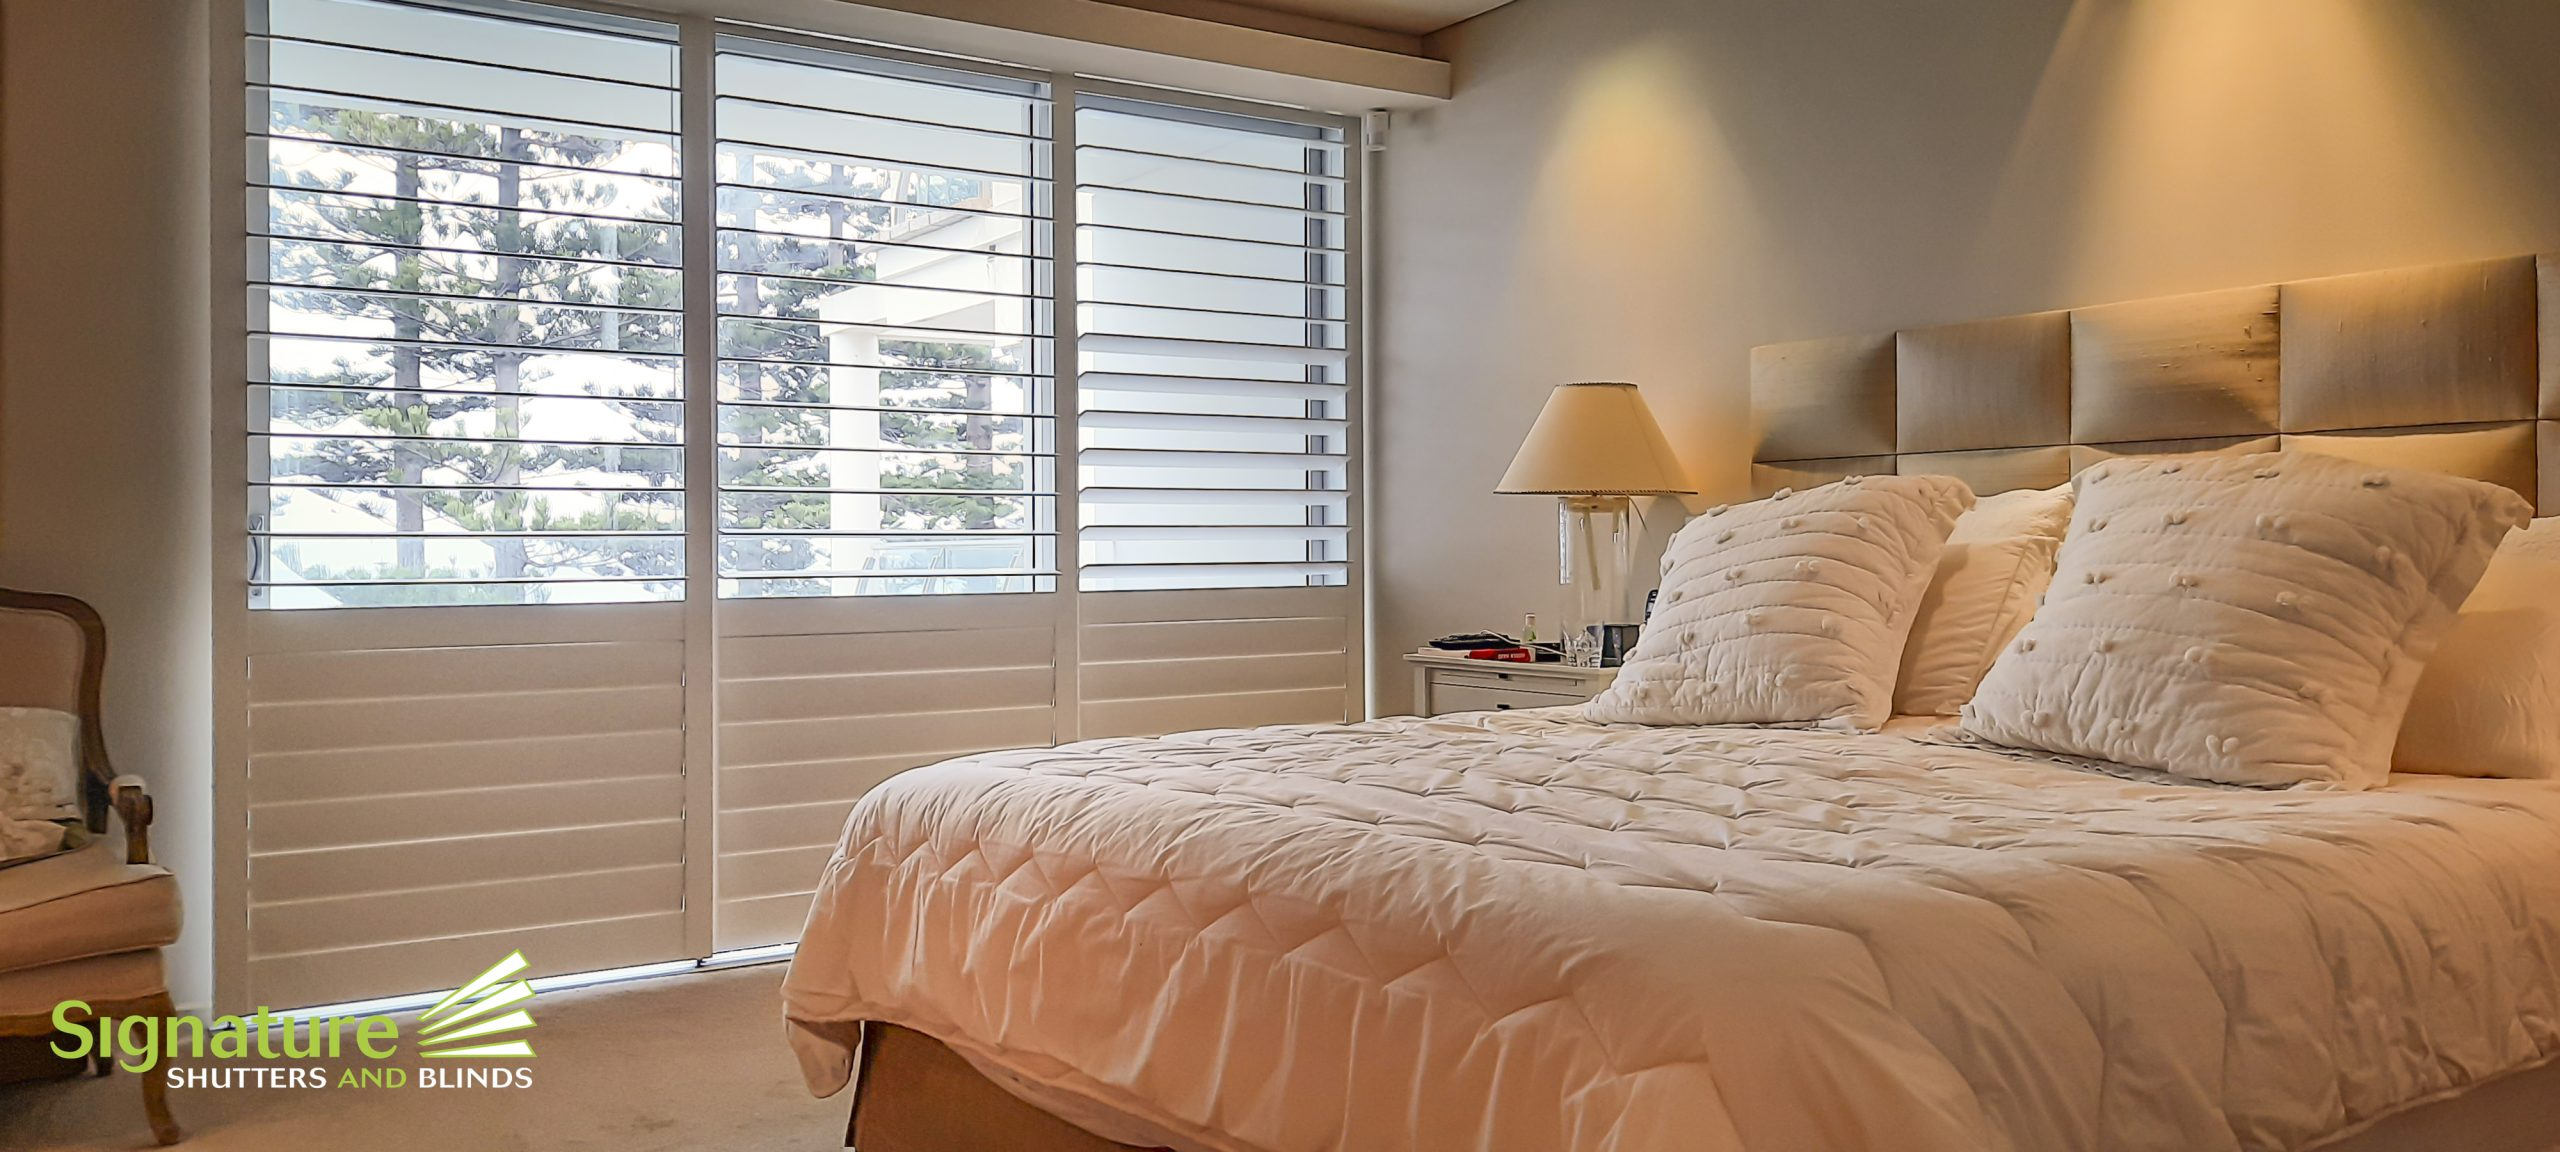 Sliding Shutters, 114mm blades closed